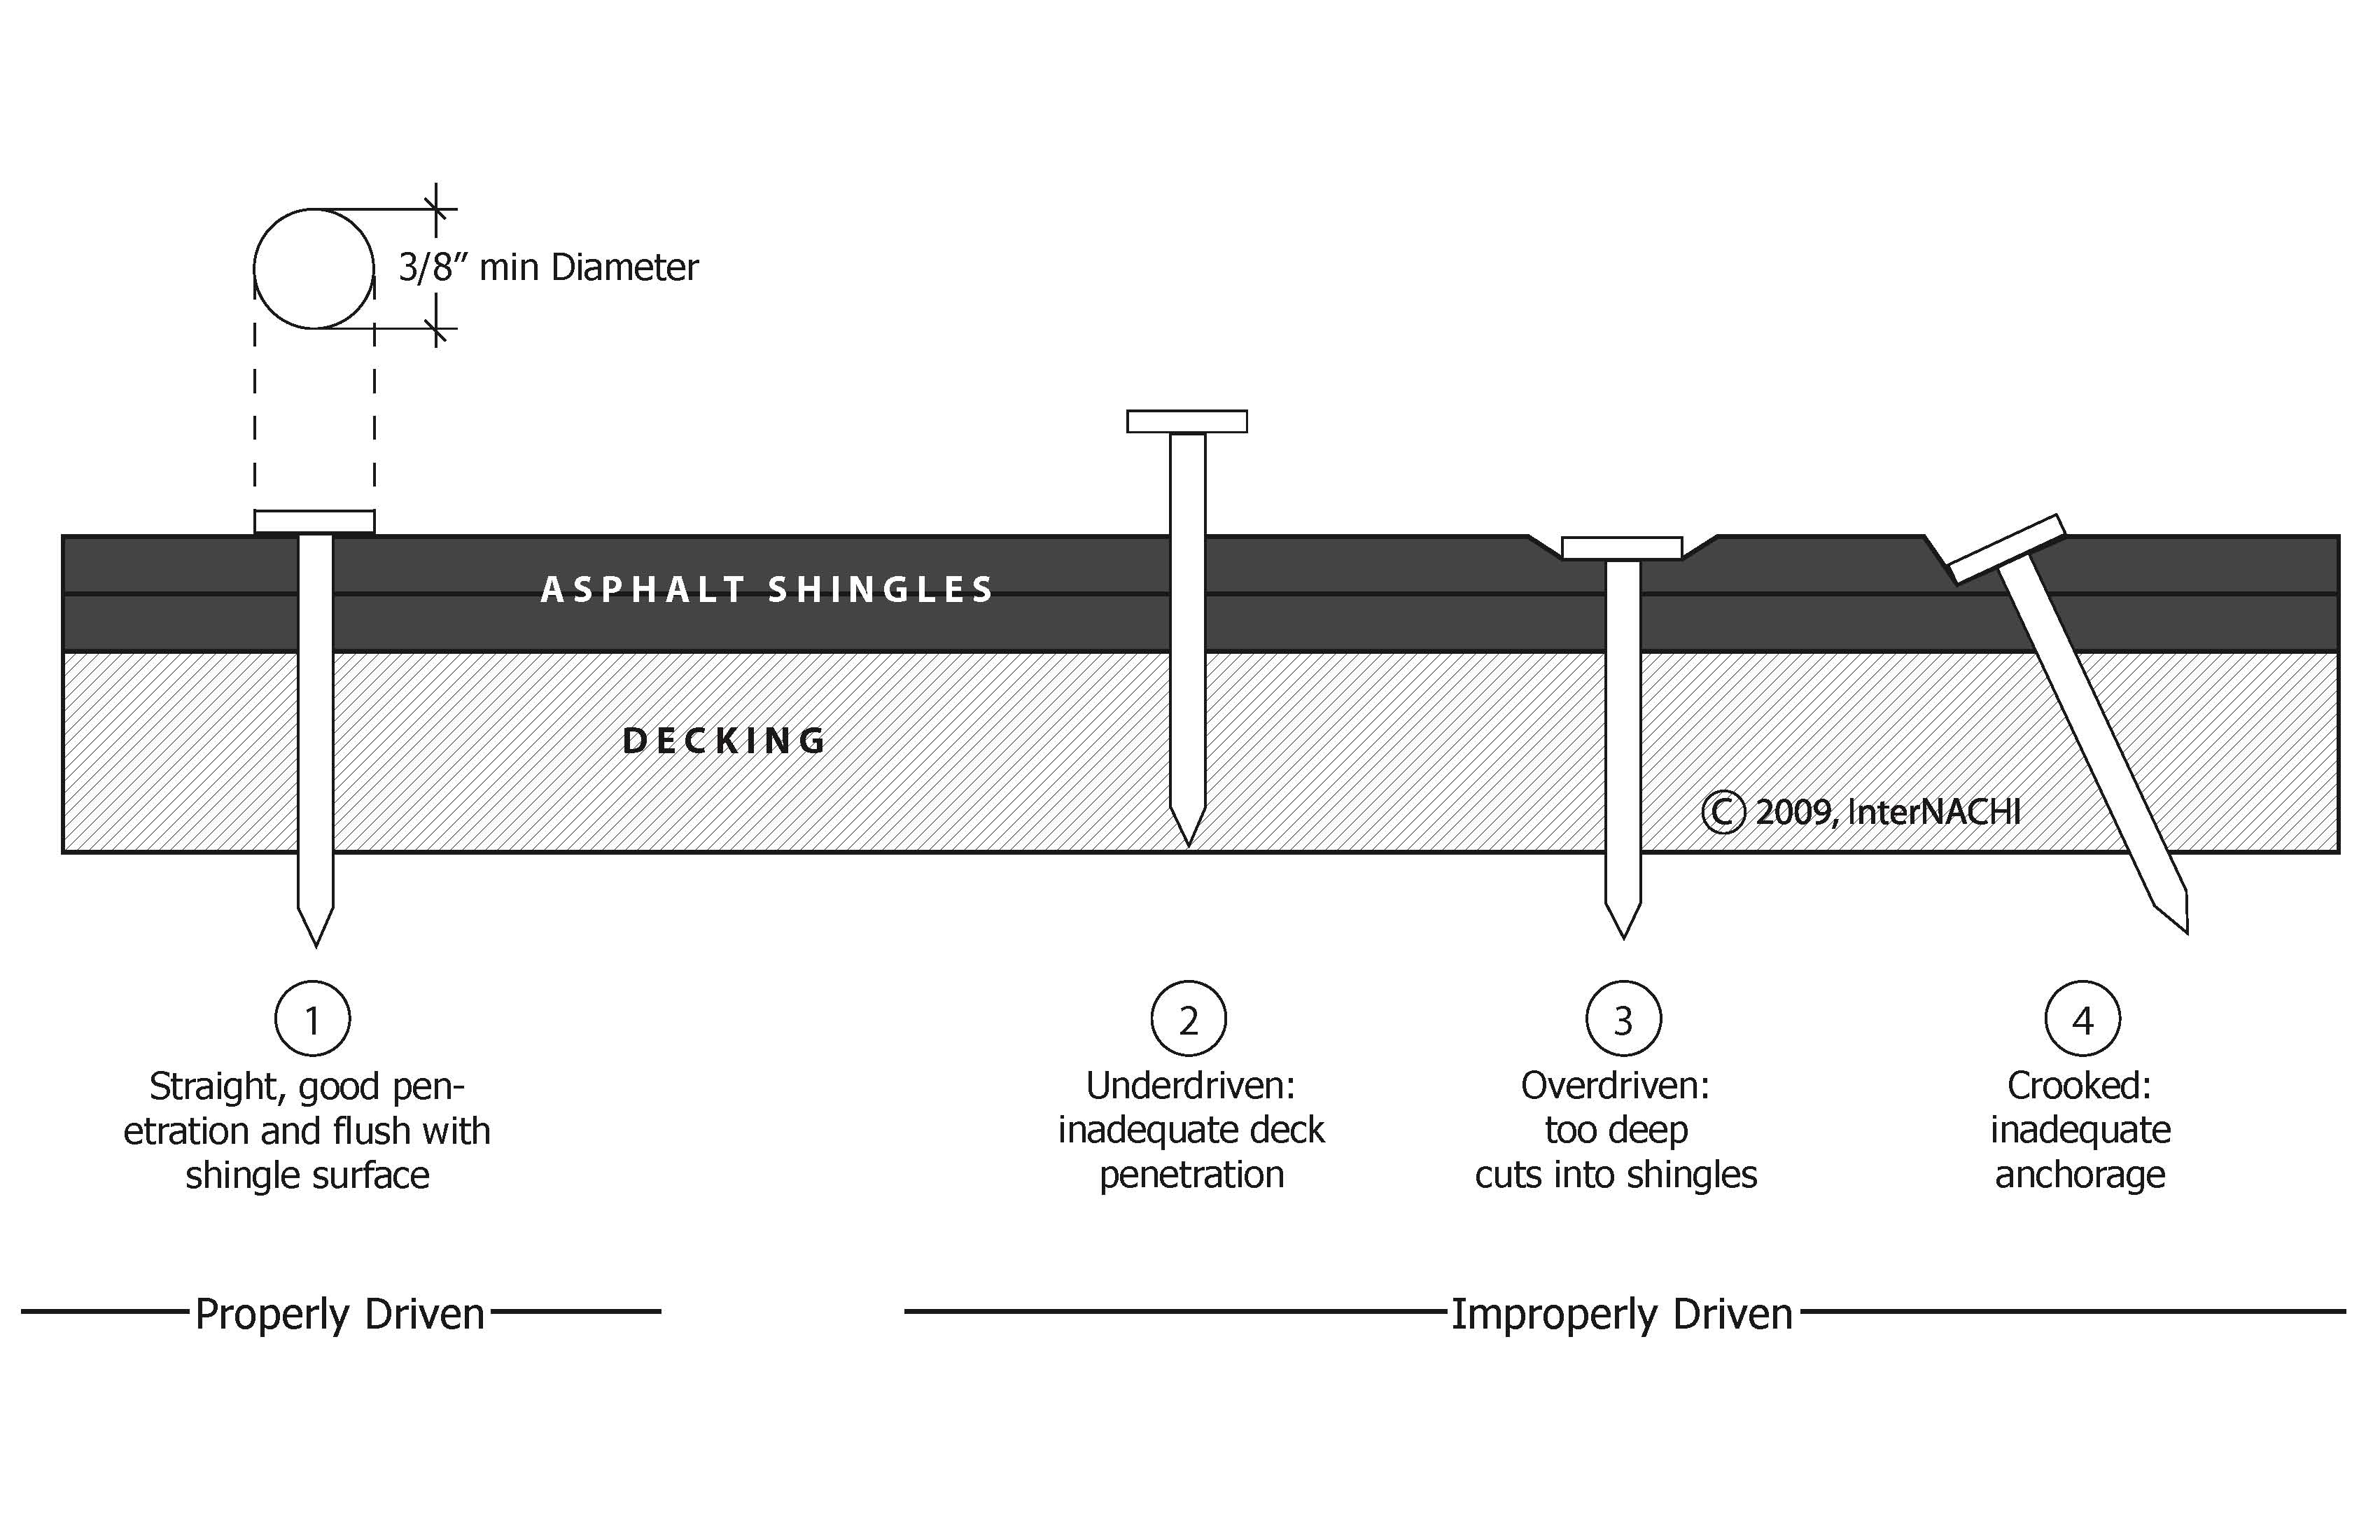 Asphalt shingle nailing diagram.